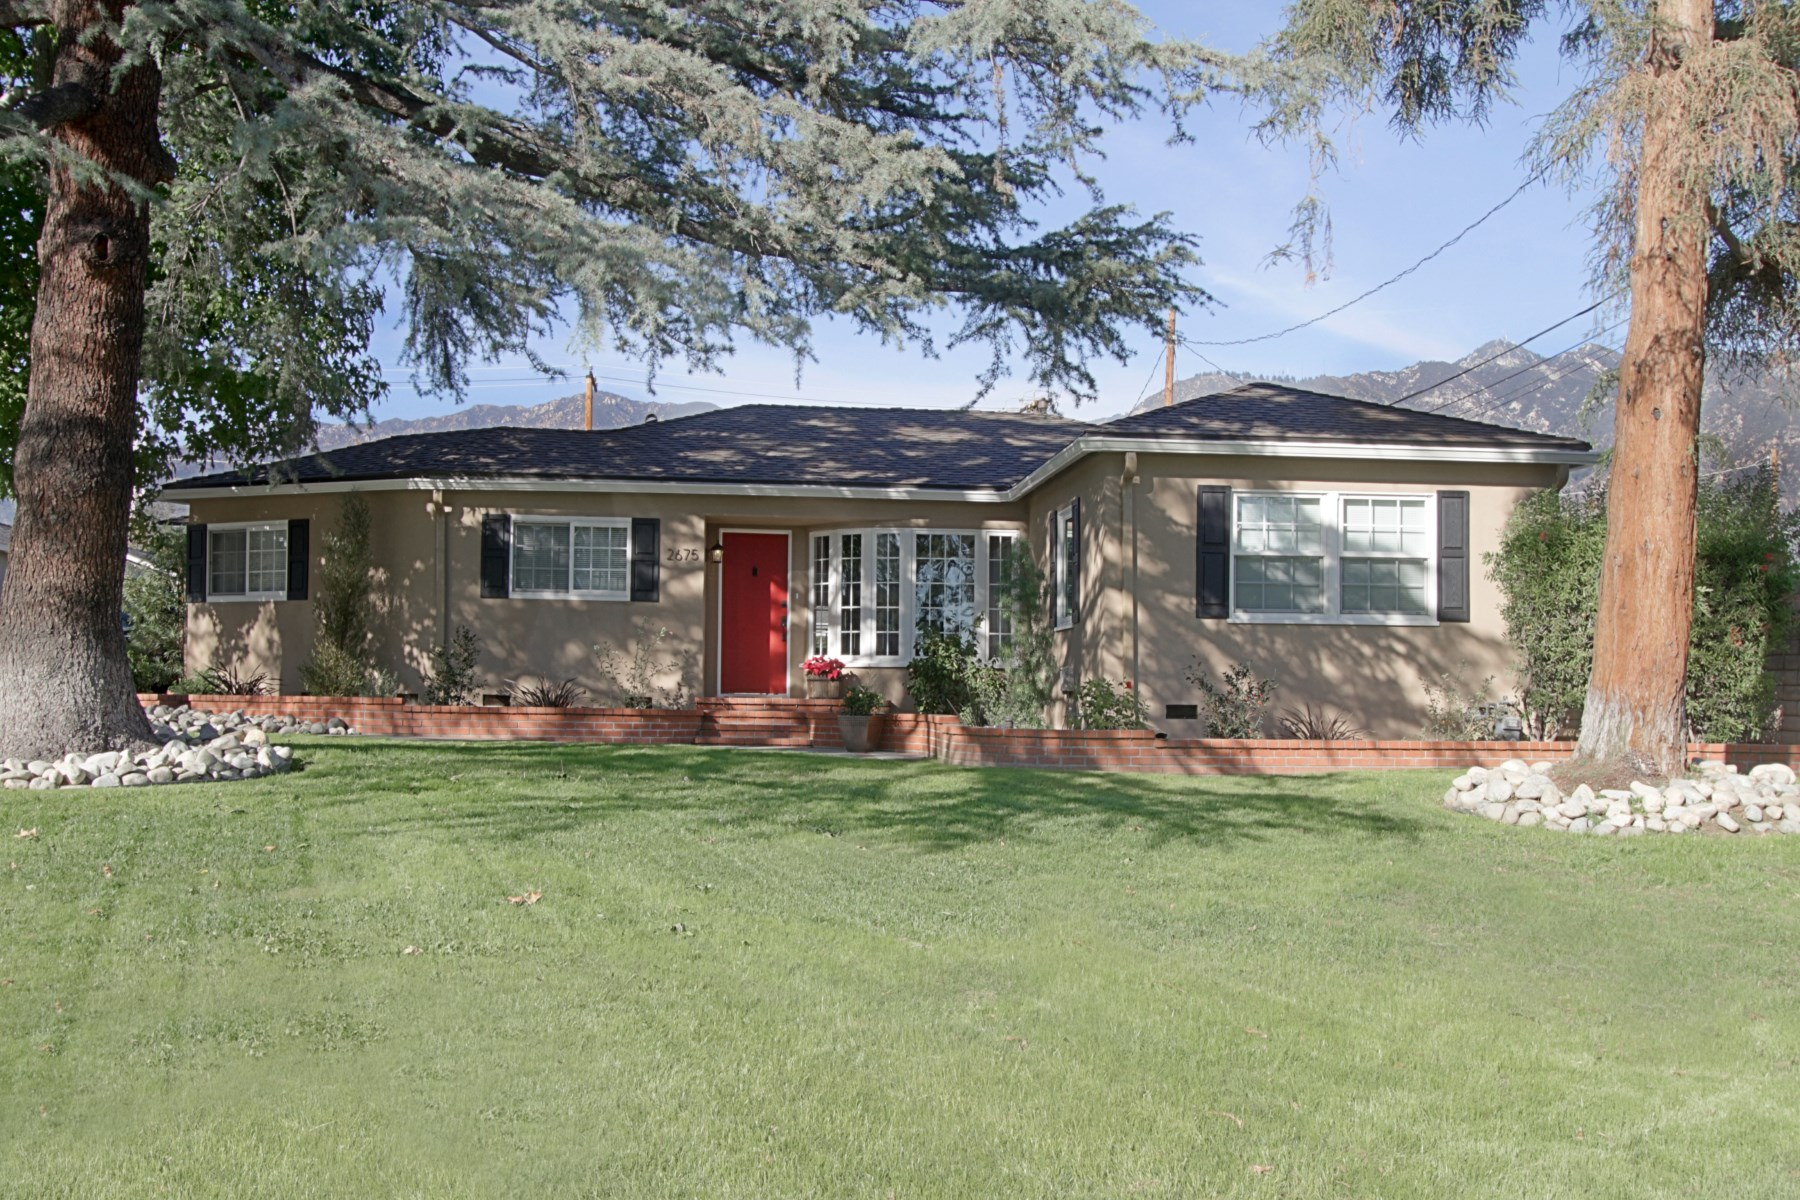 Single Family Home for Sale at Remodeled Traditional 2675 Las Lunas Street Pasadena, California 91107 United States